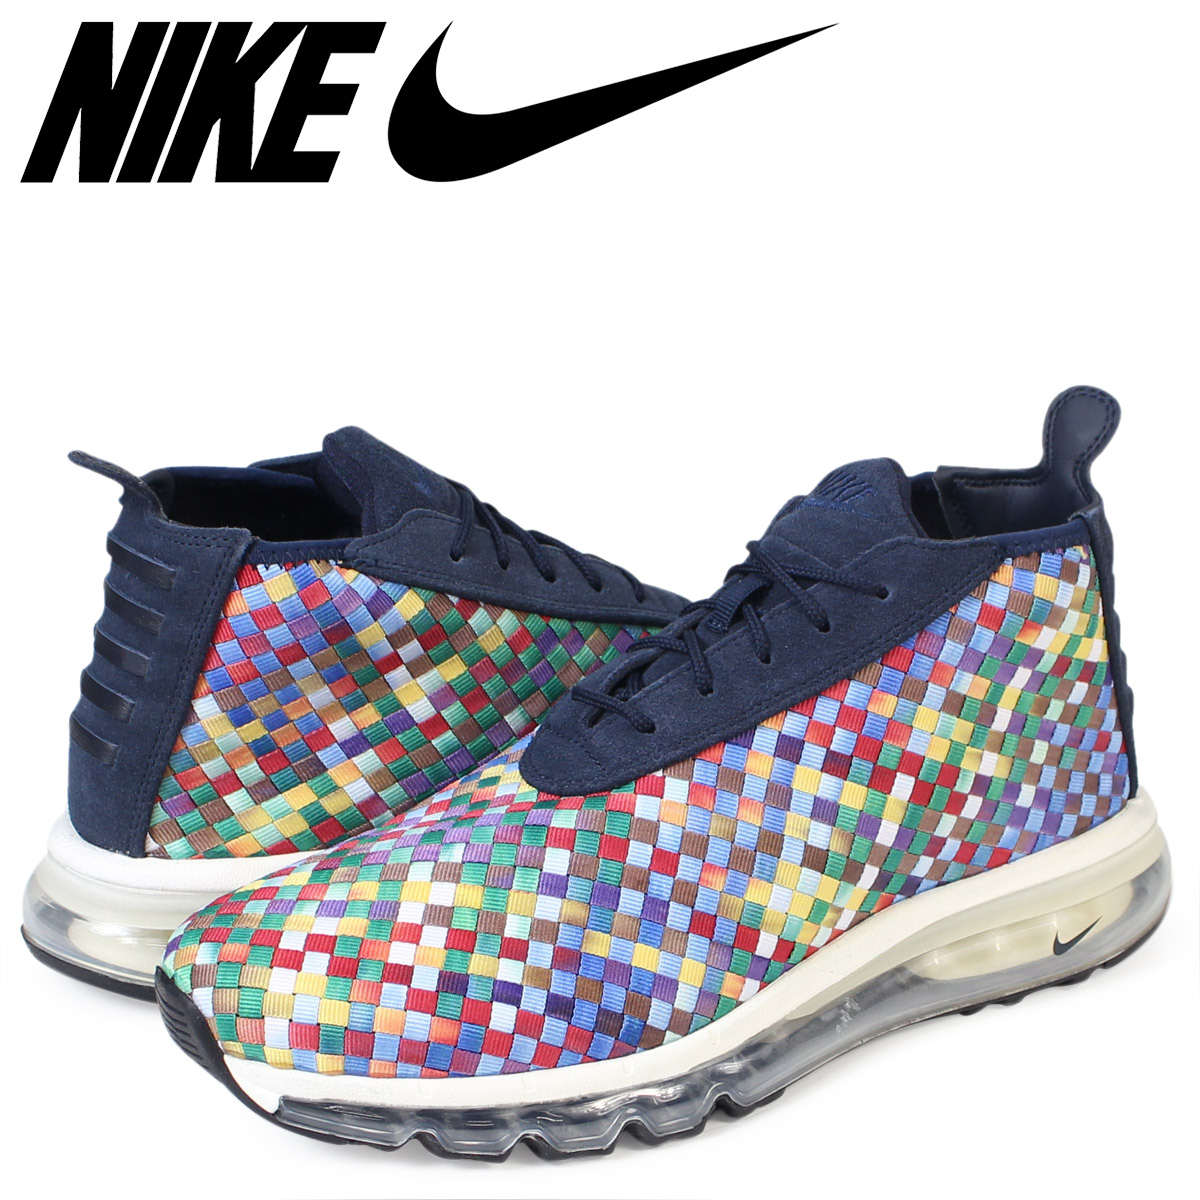 Nike NIKE Air Max sneakers AIR MAX WOVEN BOOT SE AH8139-400 men shoes  multi- load planned Shinnyu load in reservation product 9 29 containing  0f583c0ac